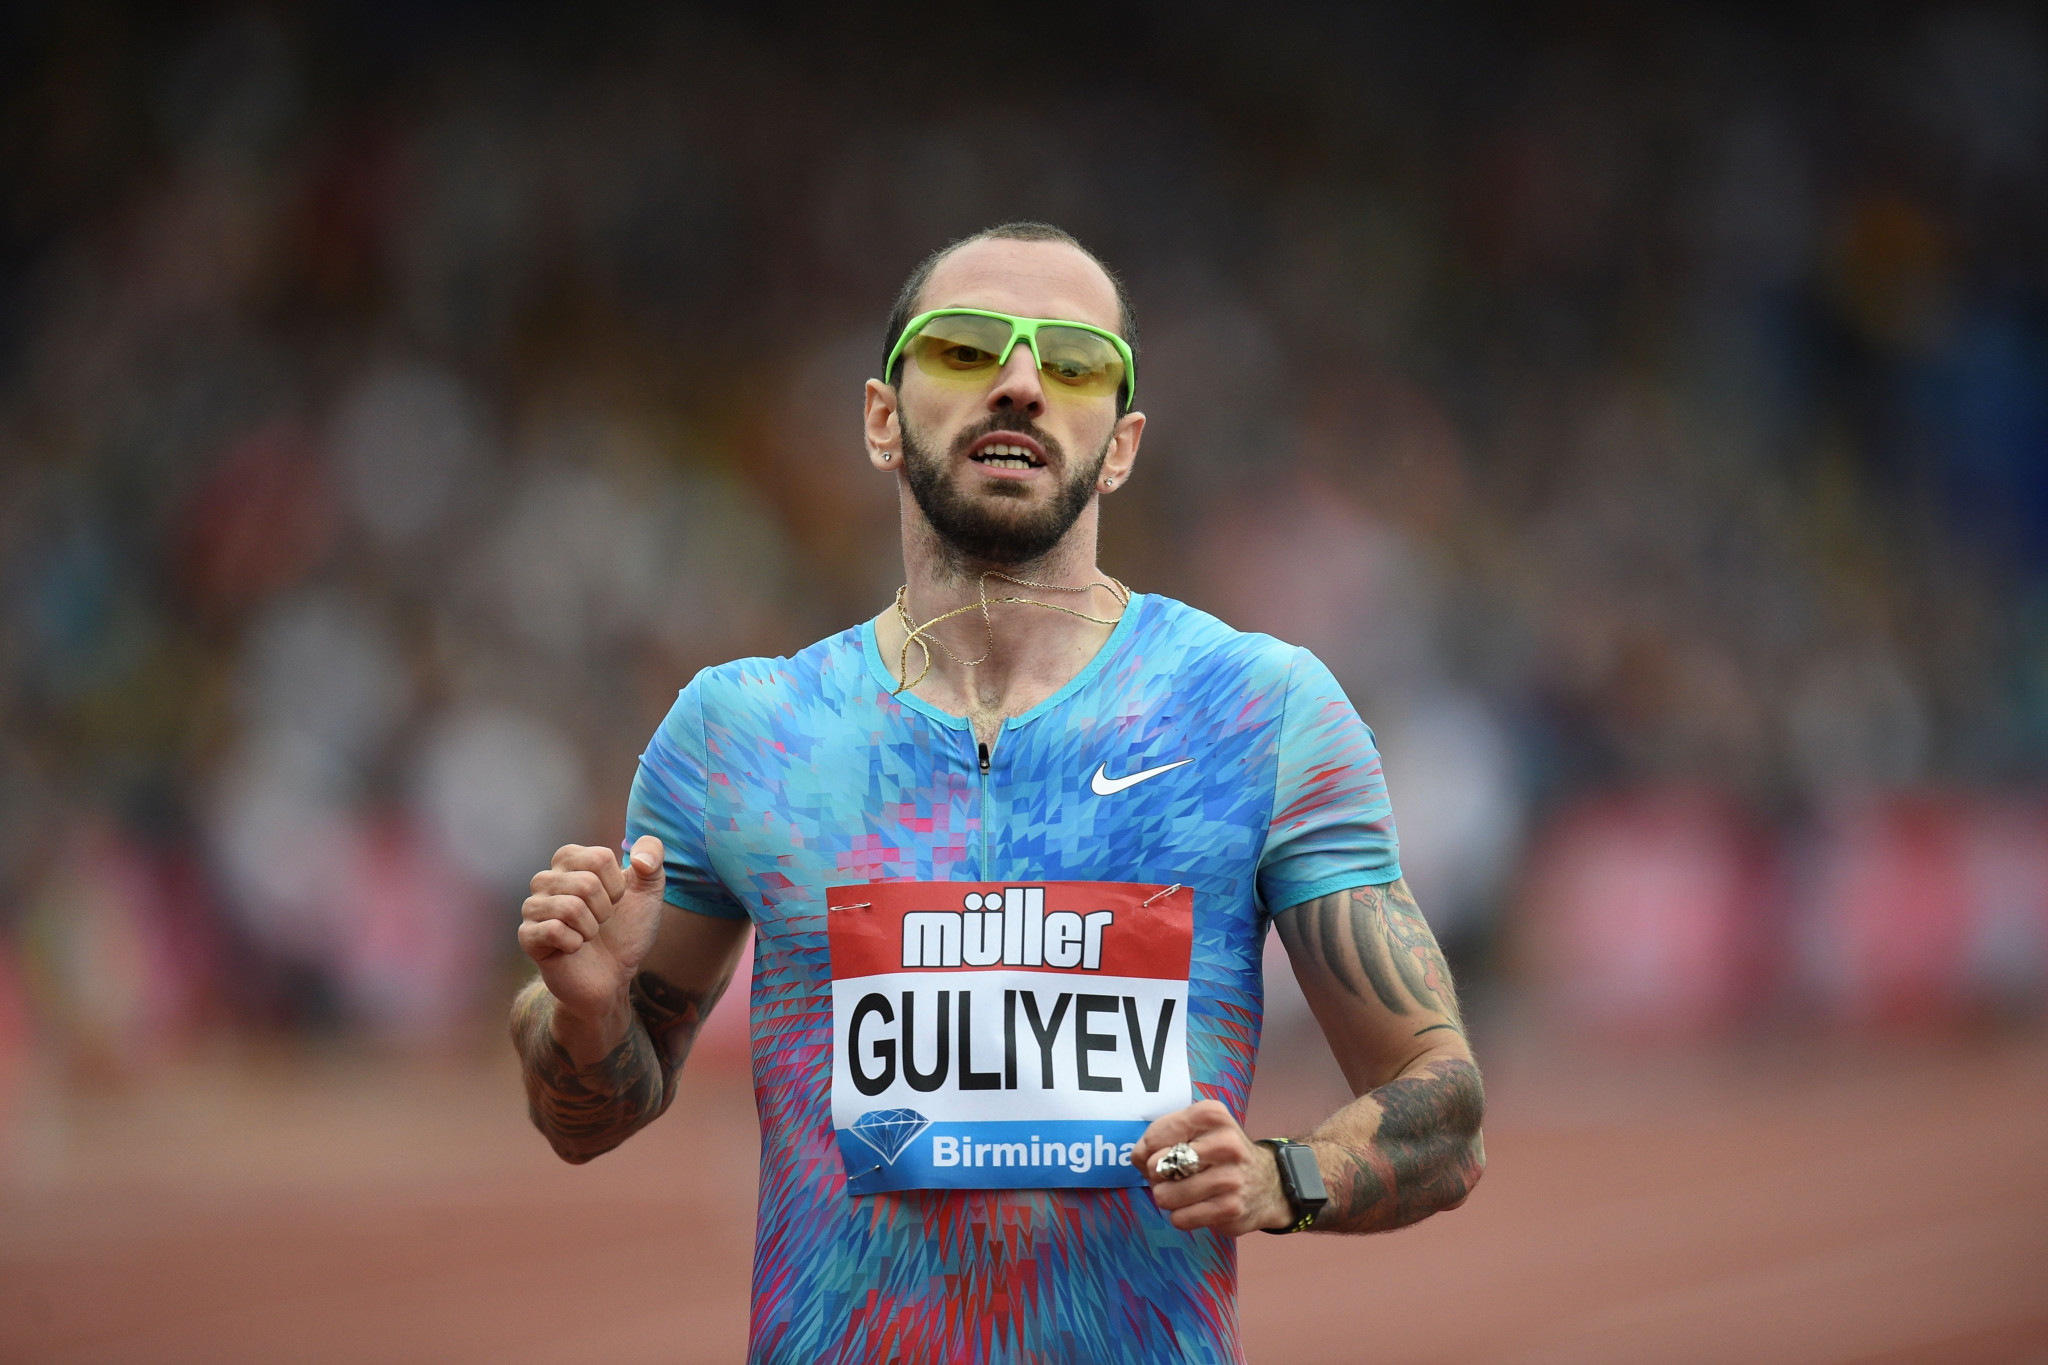 Guliyev wins in record breaking time as athletics kicks into gear at Mediterranean Games